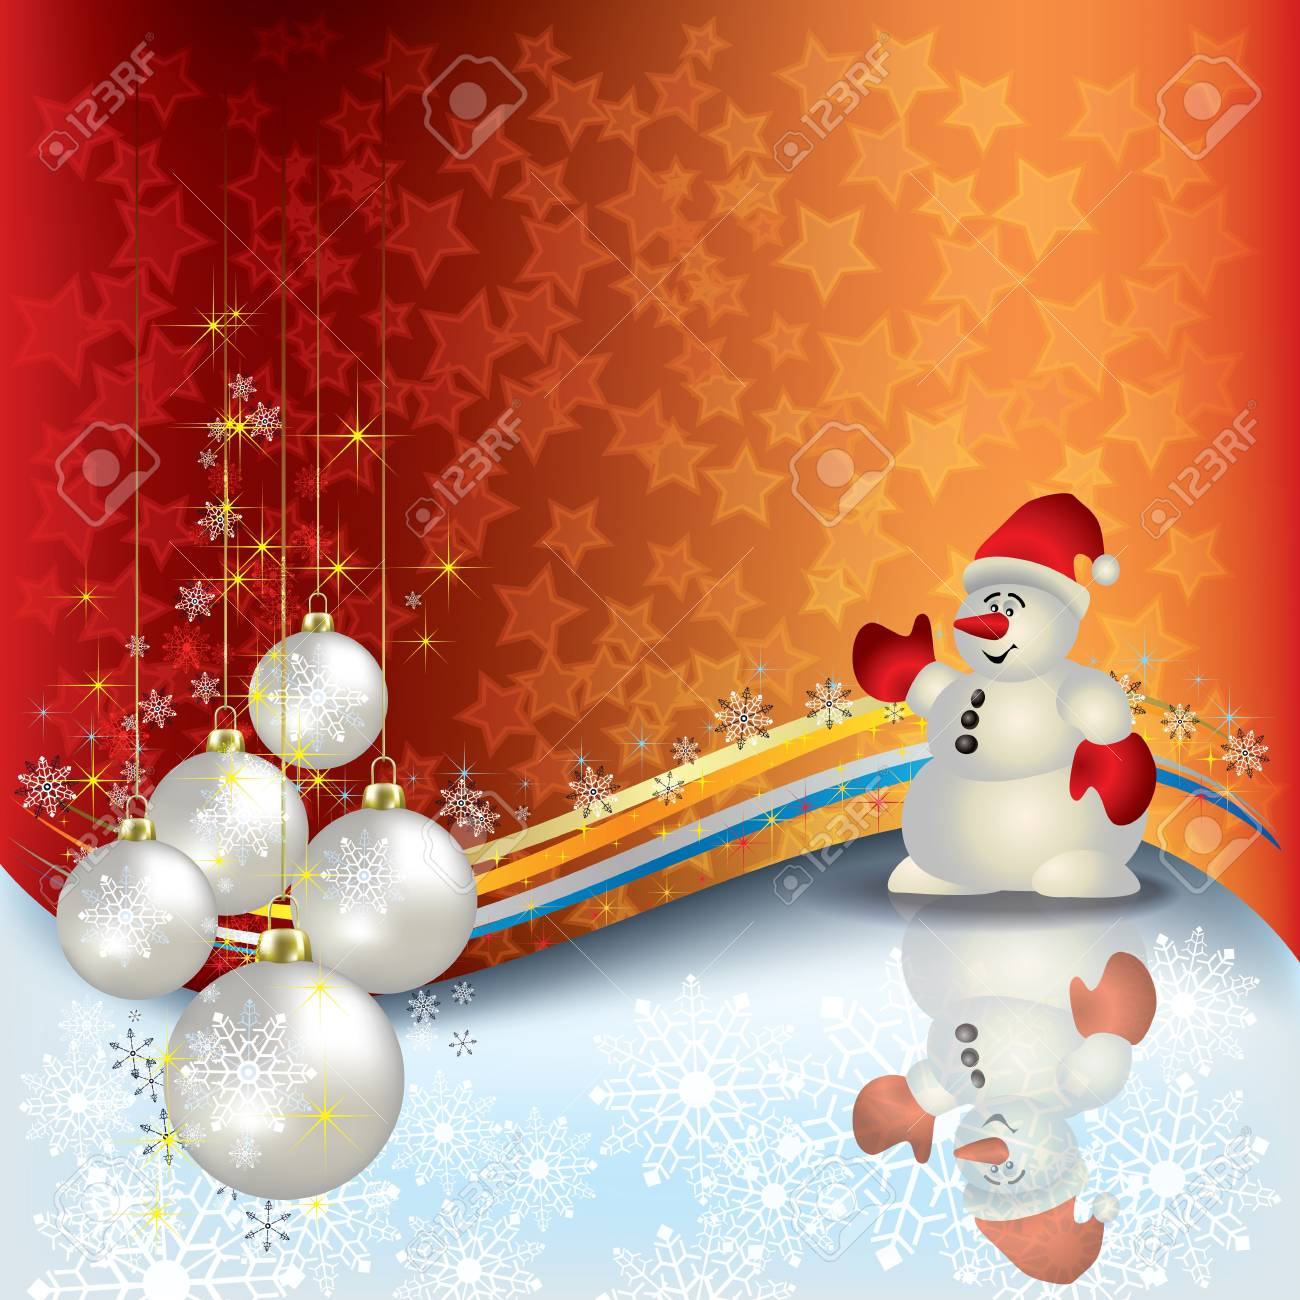 Abstract Christmas background with Snowman and decorations Stock Vector - 10511655